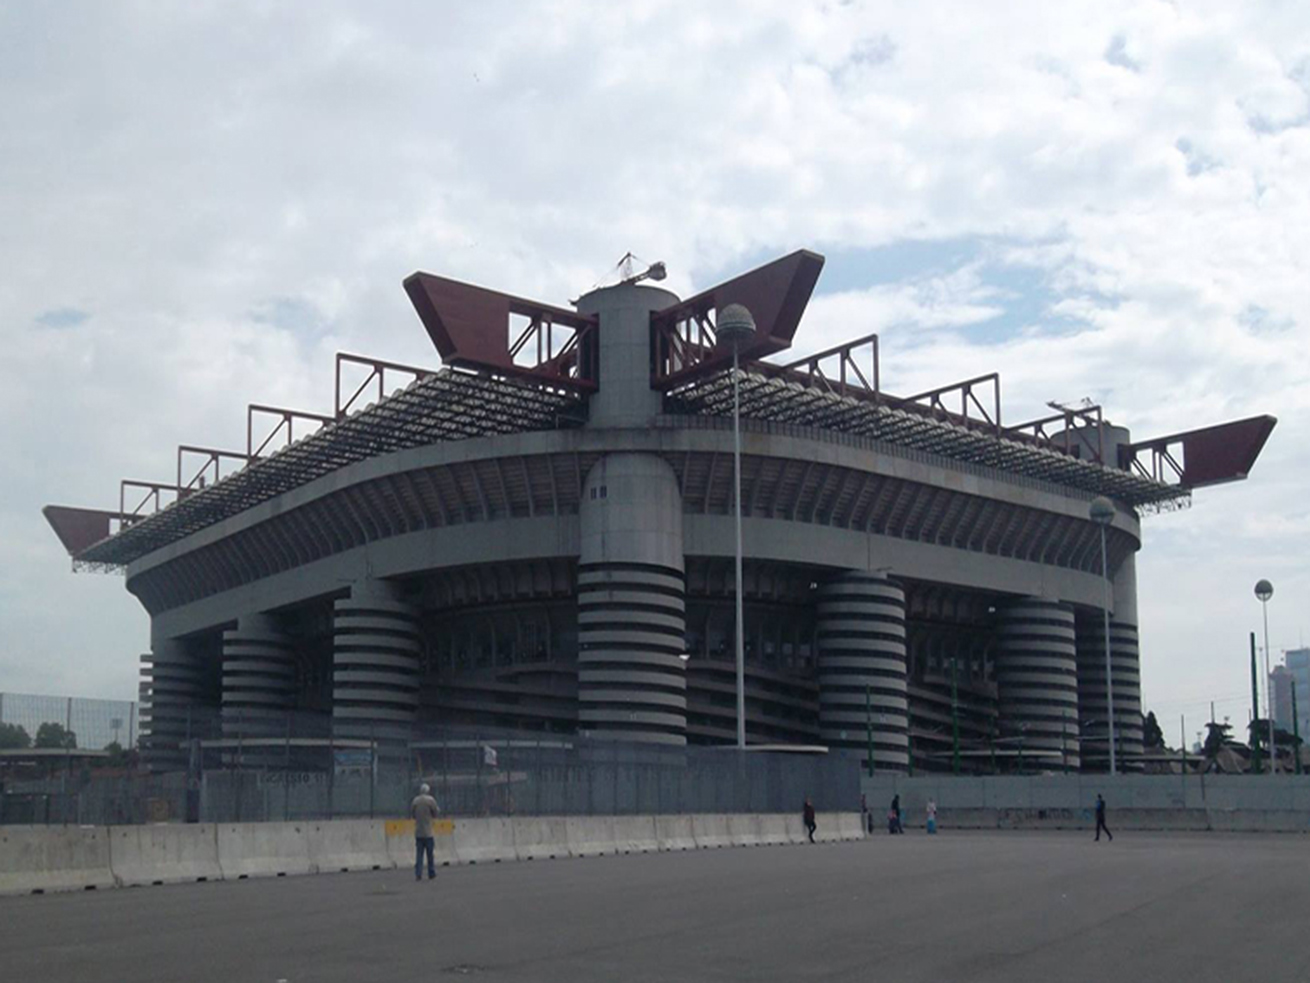 san siro, the san siro, san siro stadium, ac milan stadium, inter milan stadium, tour of san siro, things to see in Milan, things to do in Milan